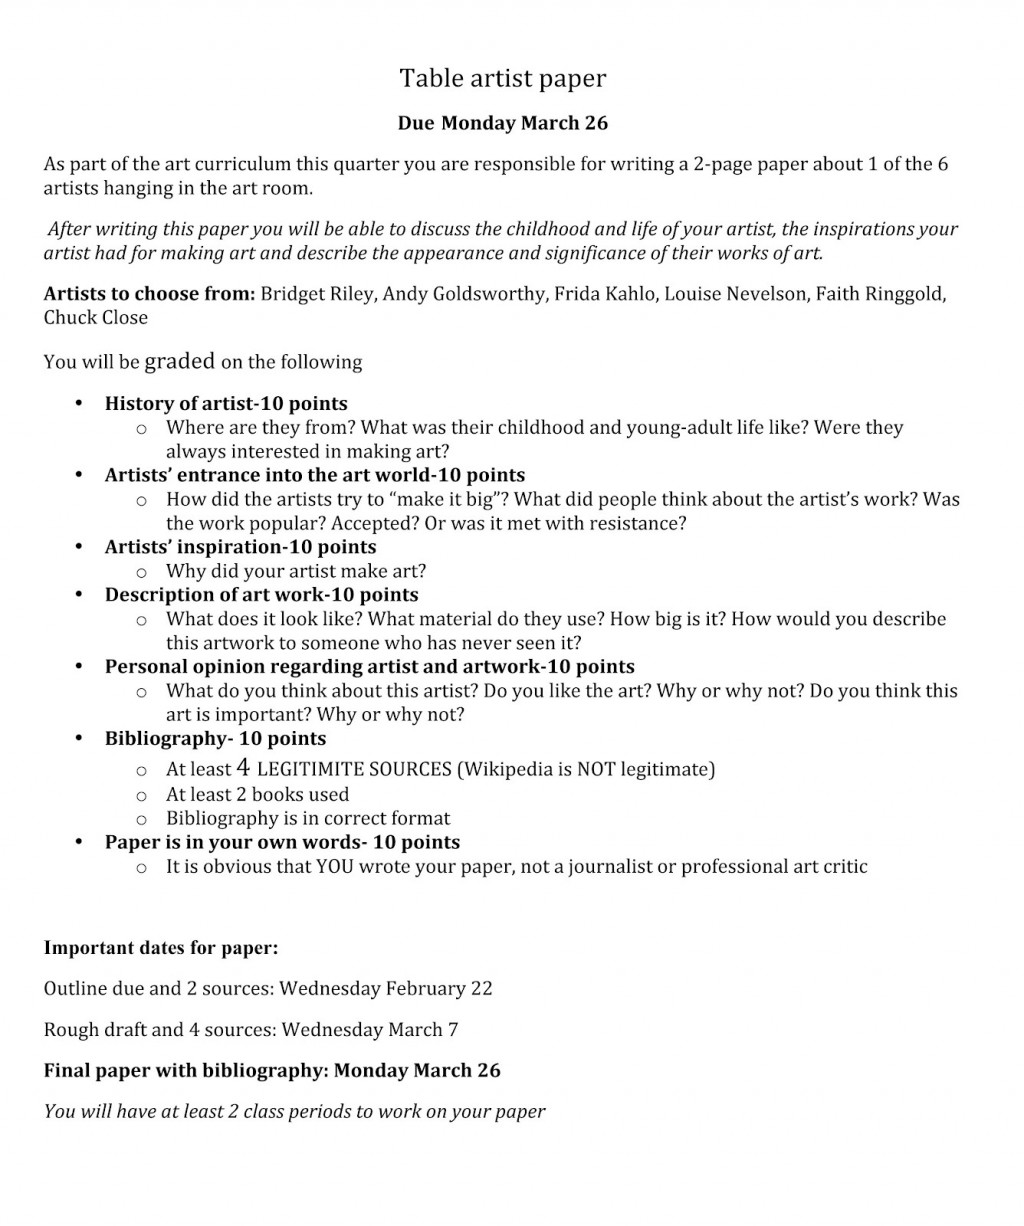 015 Table20artist20paper Essay Example Outline Impressive Guide Layout Mini-q Answers Dbq Large